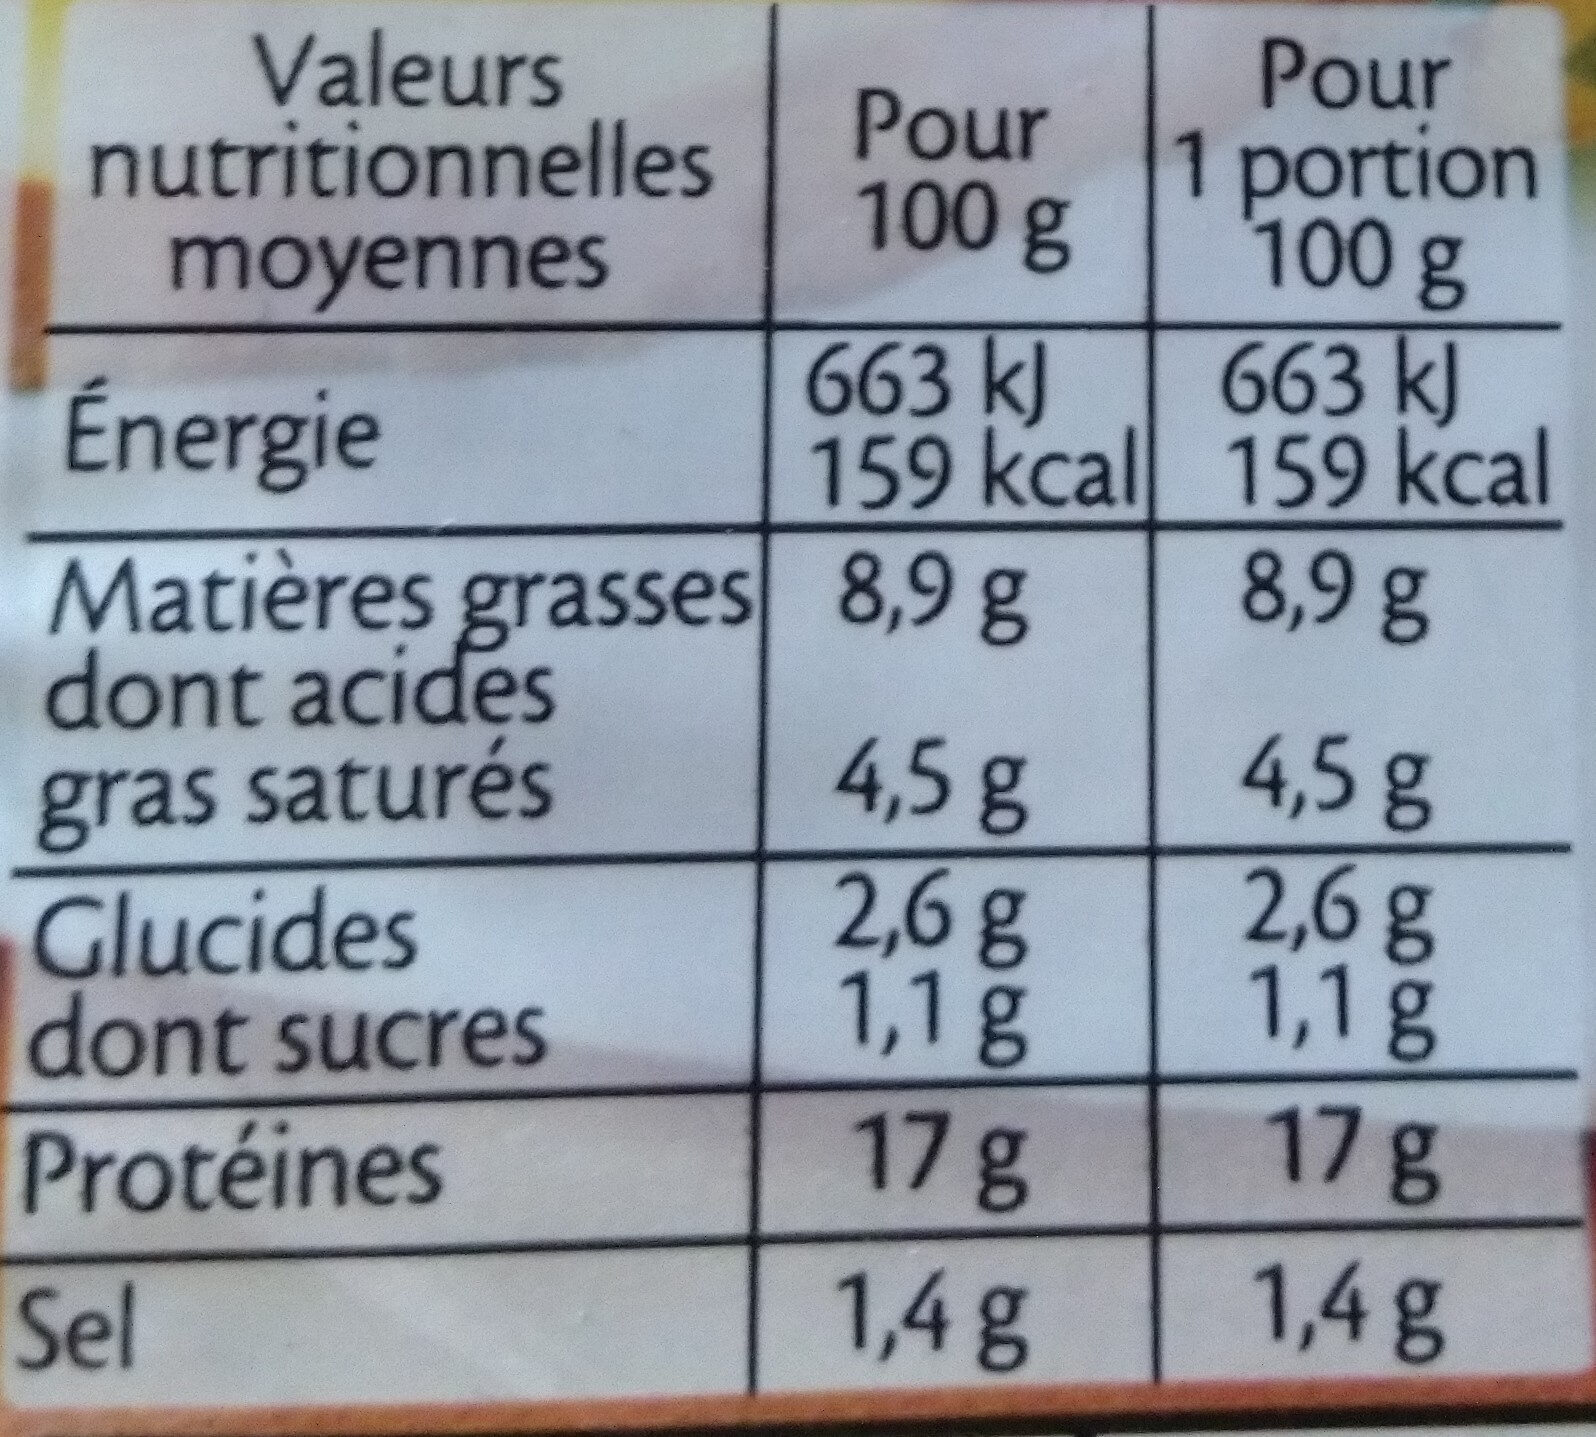 Le haché jambon emmental fondu - 2 pièces - Nutrition facts - fr